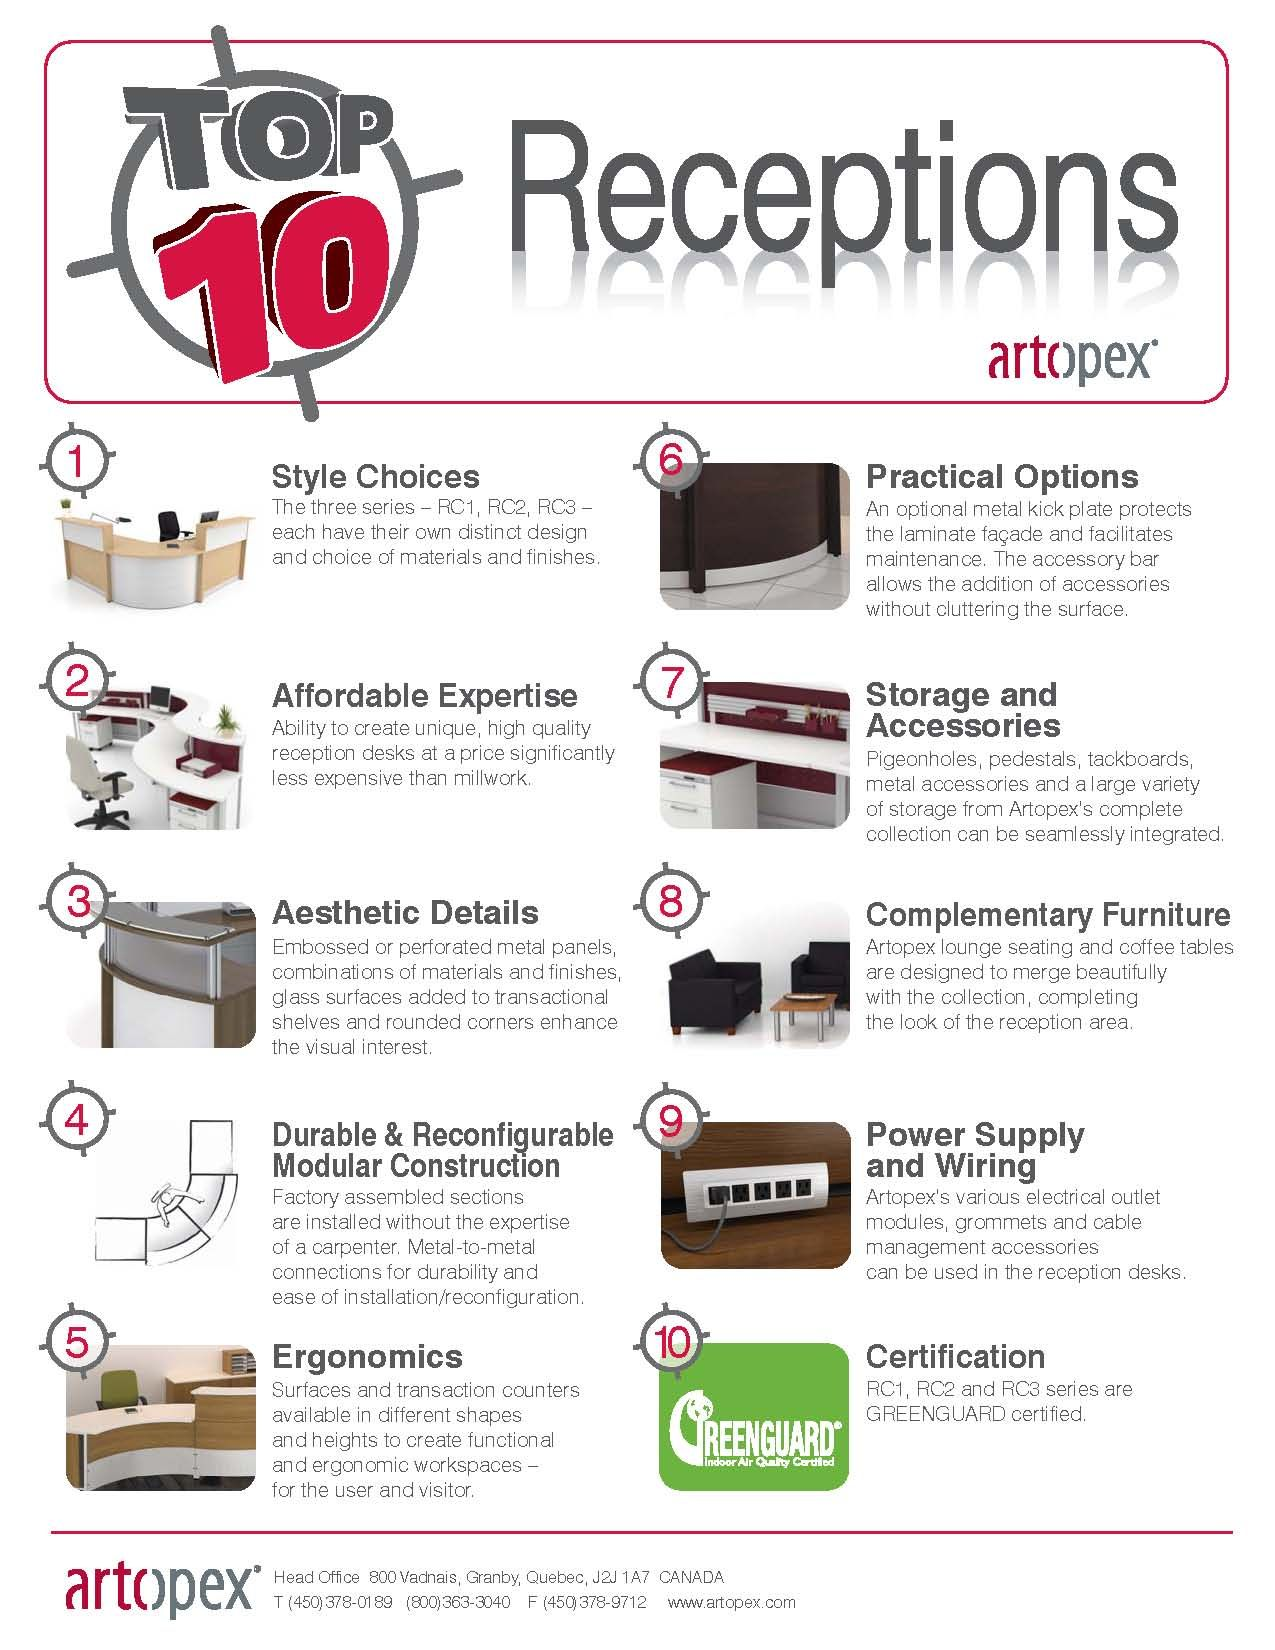 top 10 office furniture manufacturers. Top 10 Reasons To Choose Reception Stations By Artopex. Office Furniture ManufacturersInnovative Manufacturers